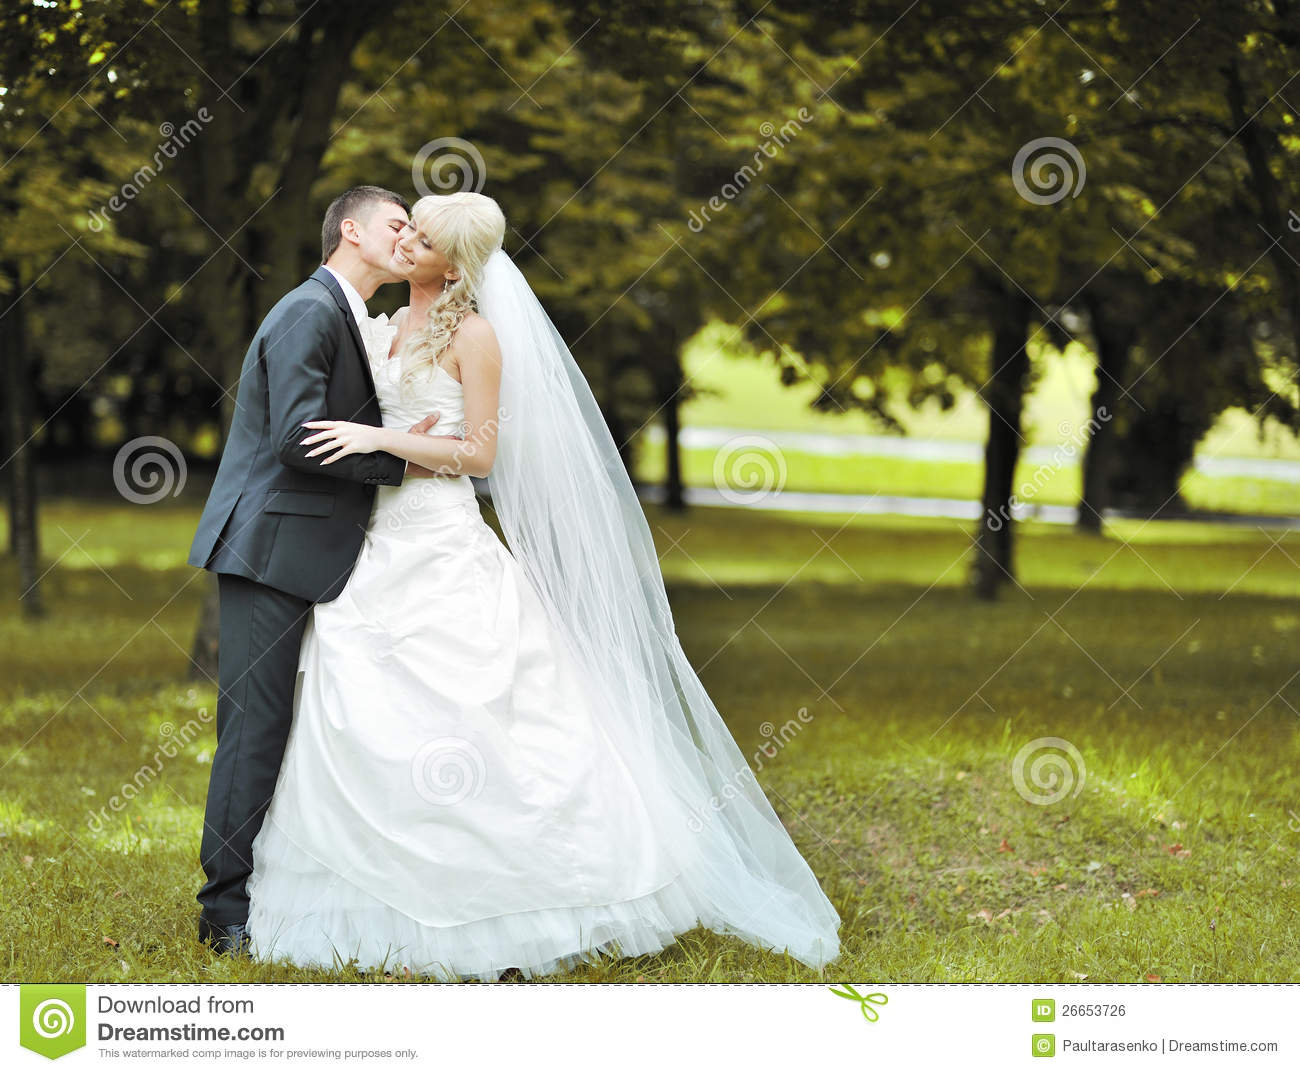 kissing wedding couple in a park royalty free stock image - image